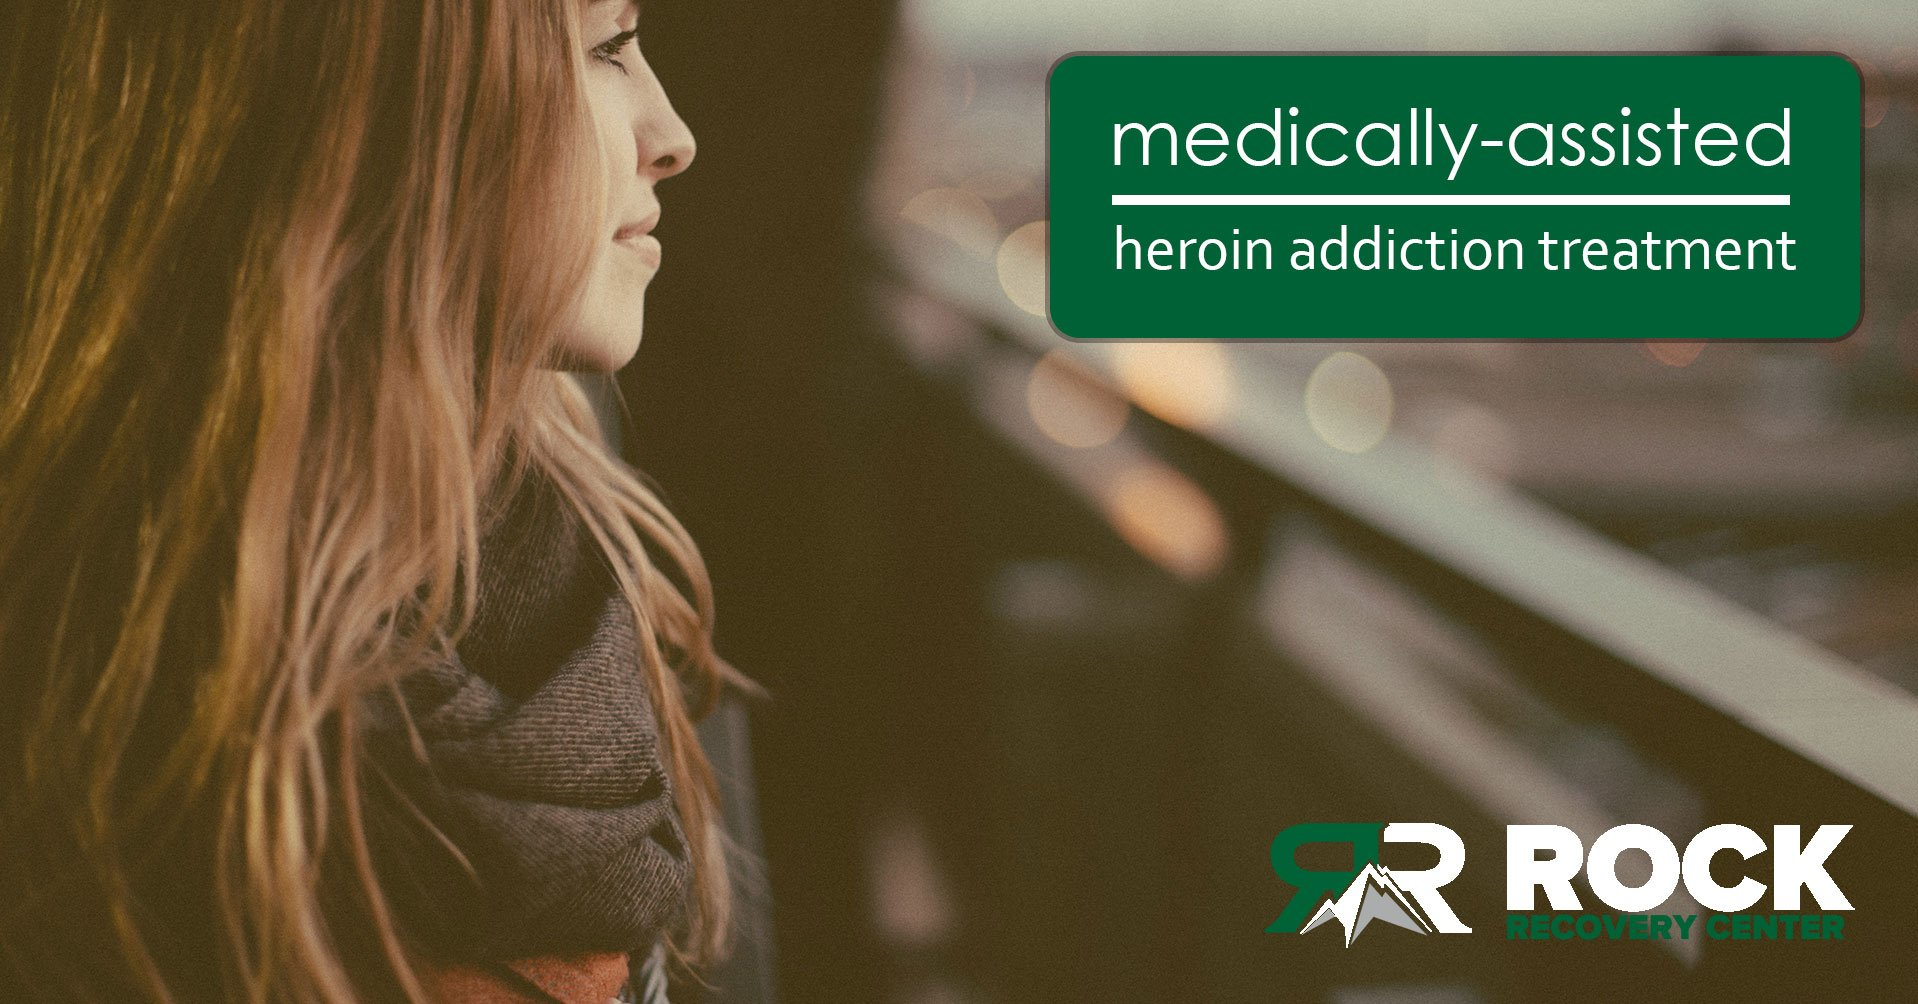 medically assisted heroin addiction treatment